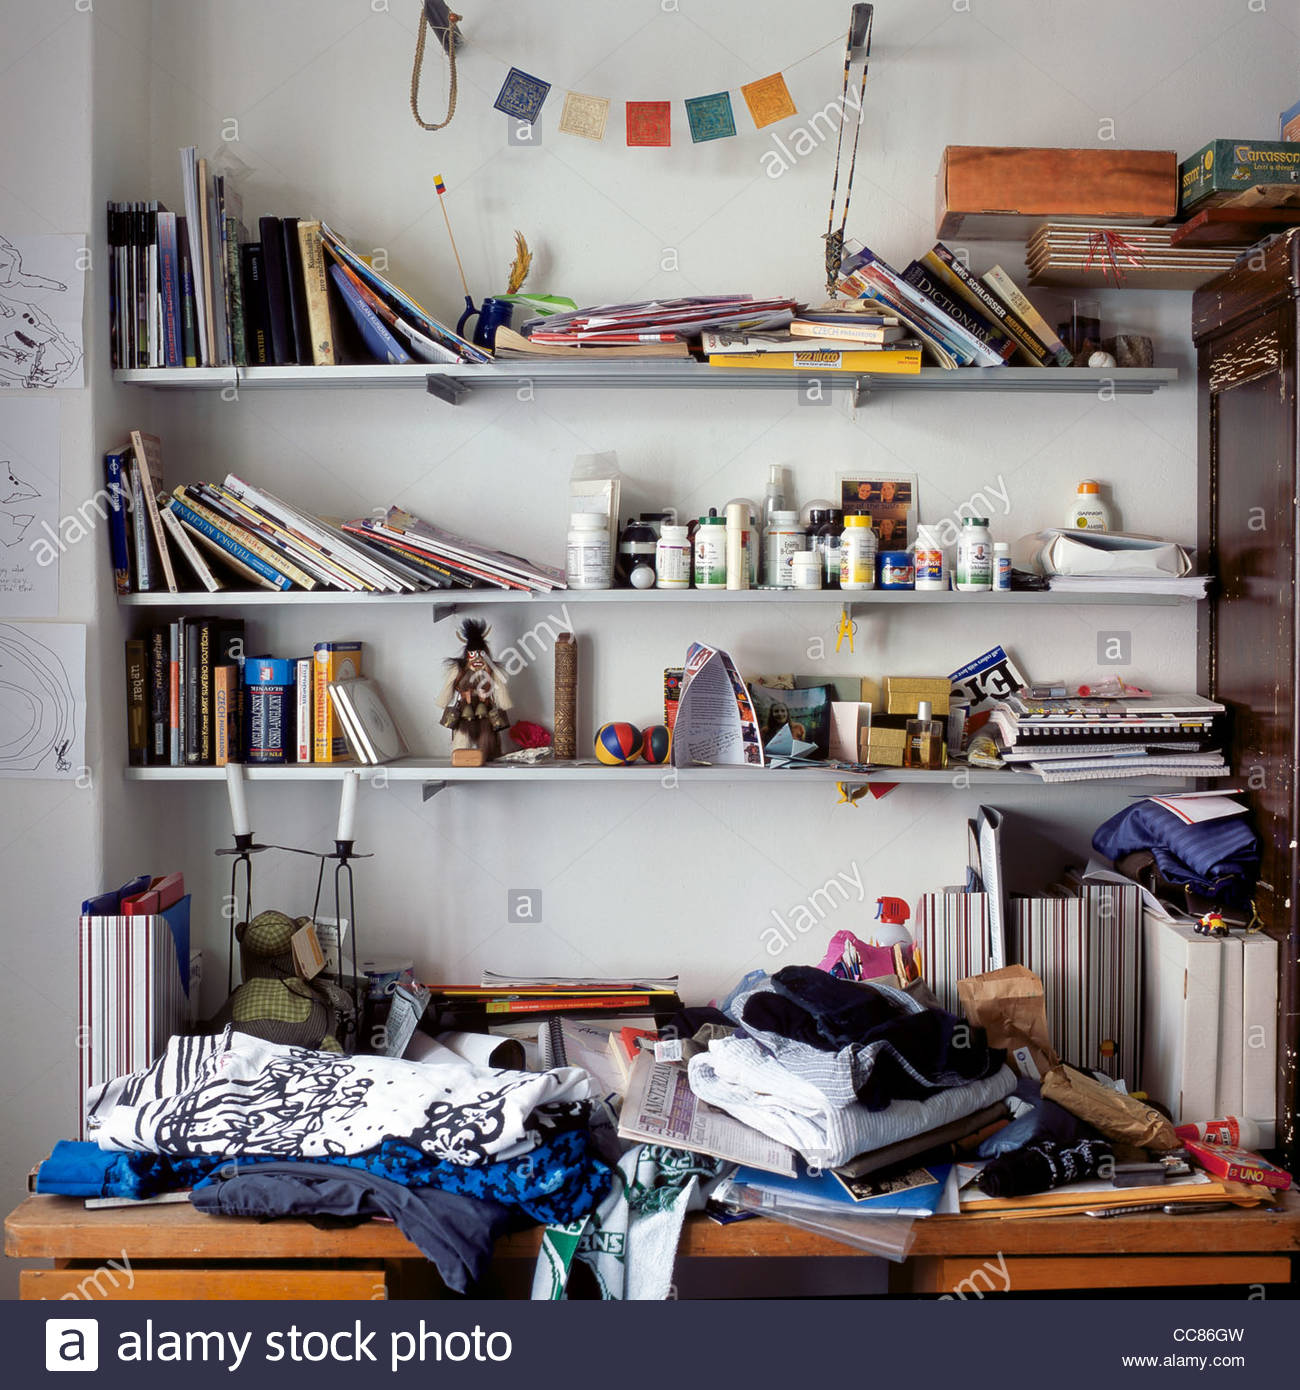 Shelves in a messy bedroom filled with books vitamins for Image of a room